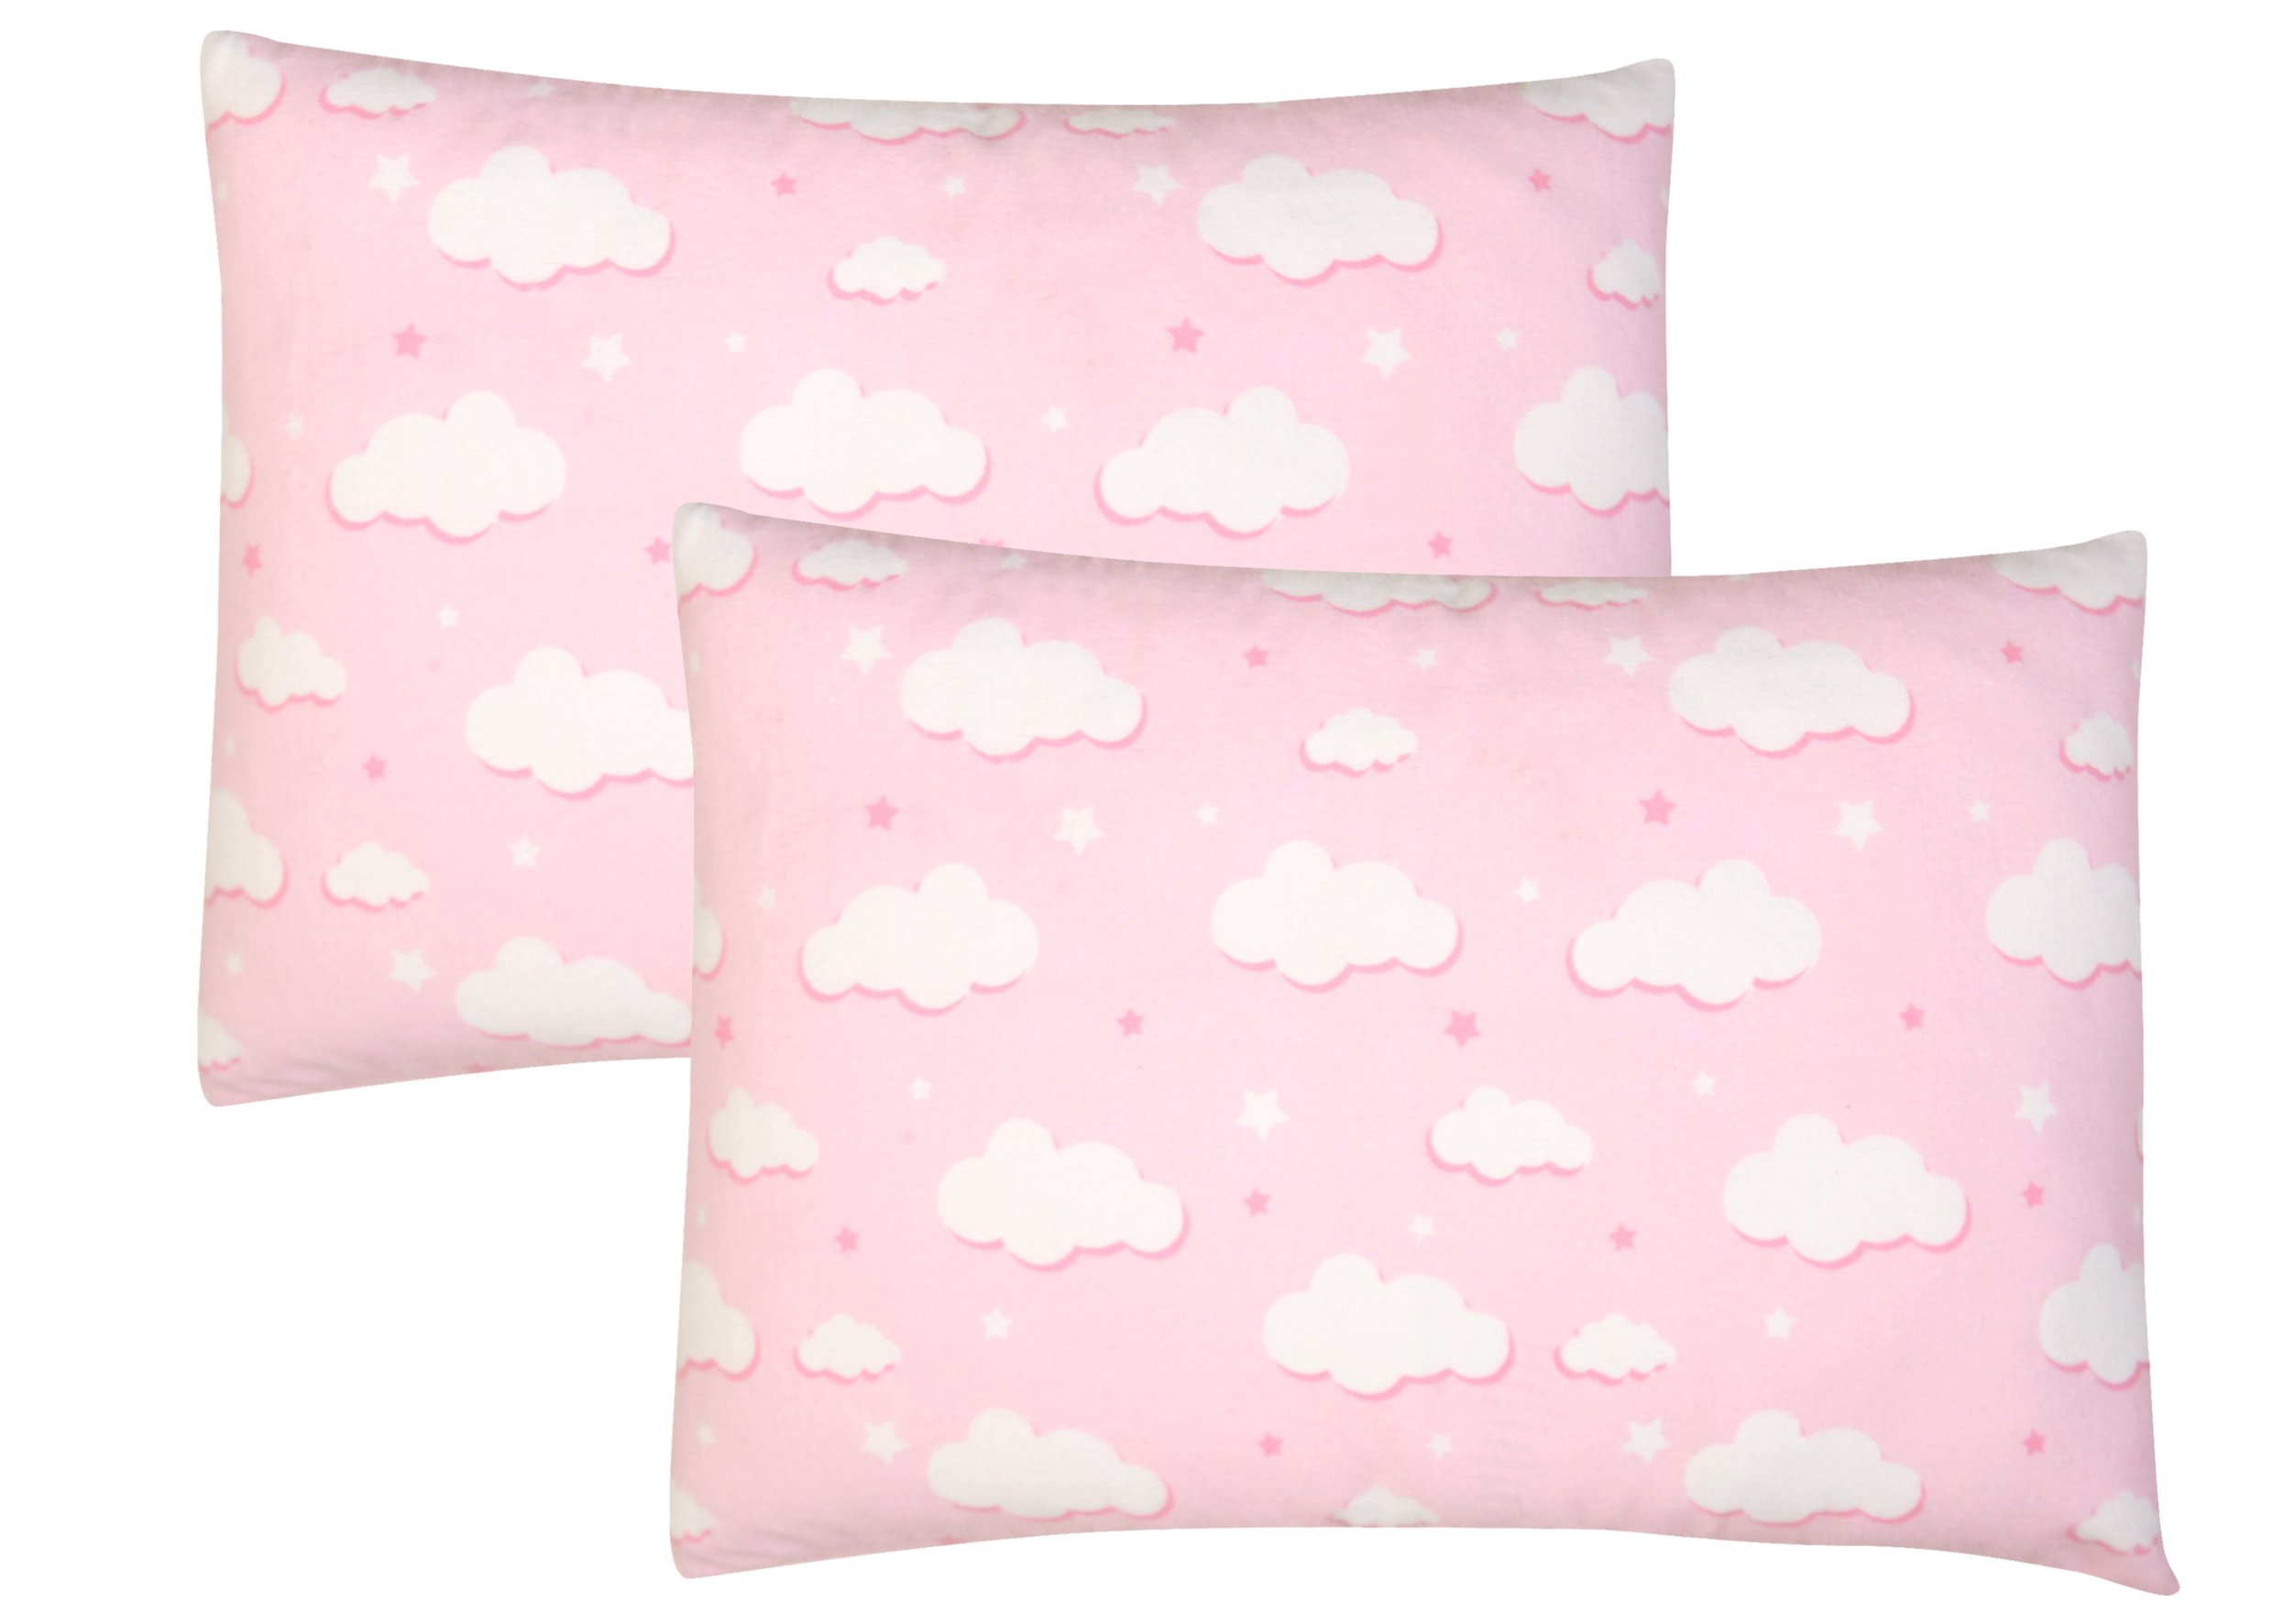 Toddler Pillowcase, 2 pack- Premium Cotton Flannel, SOFT & BREATHABLE, toddler pillowcase 13x18, Pink Clouds